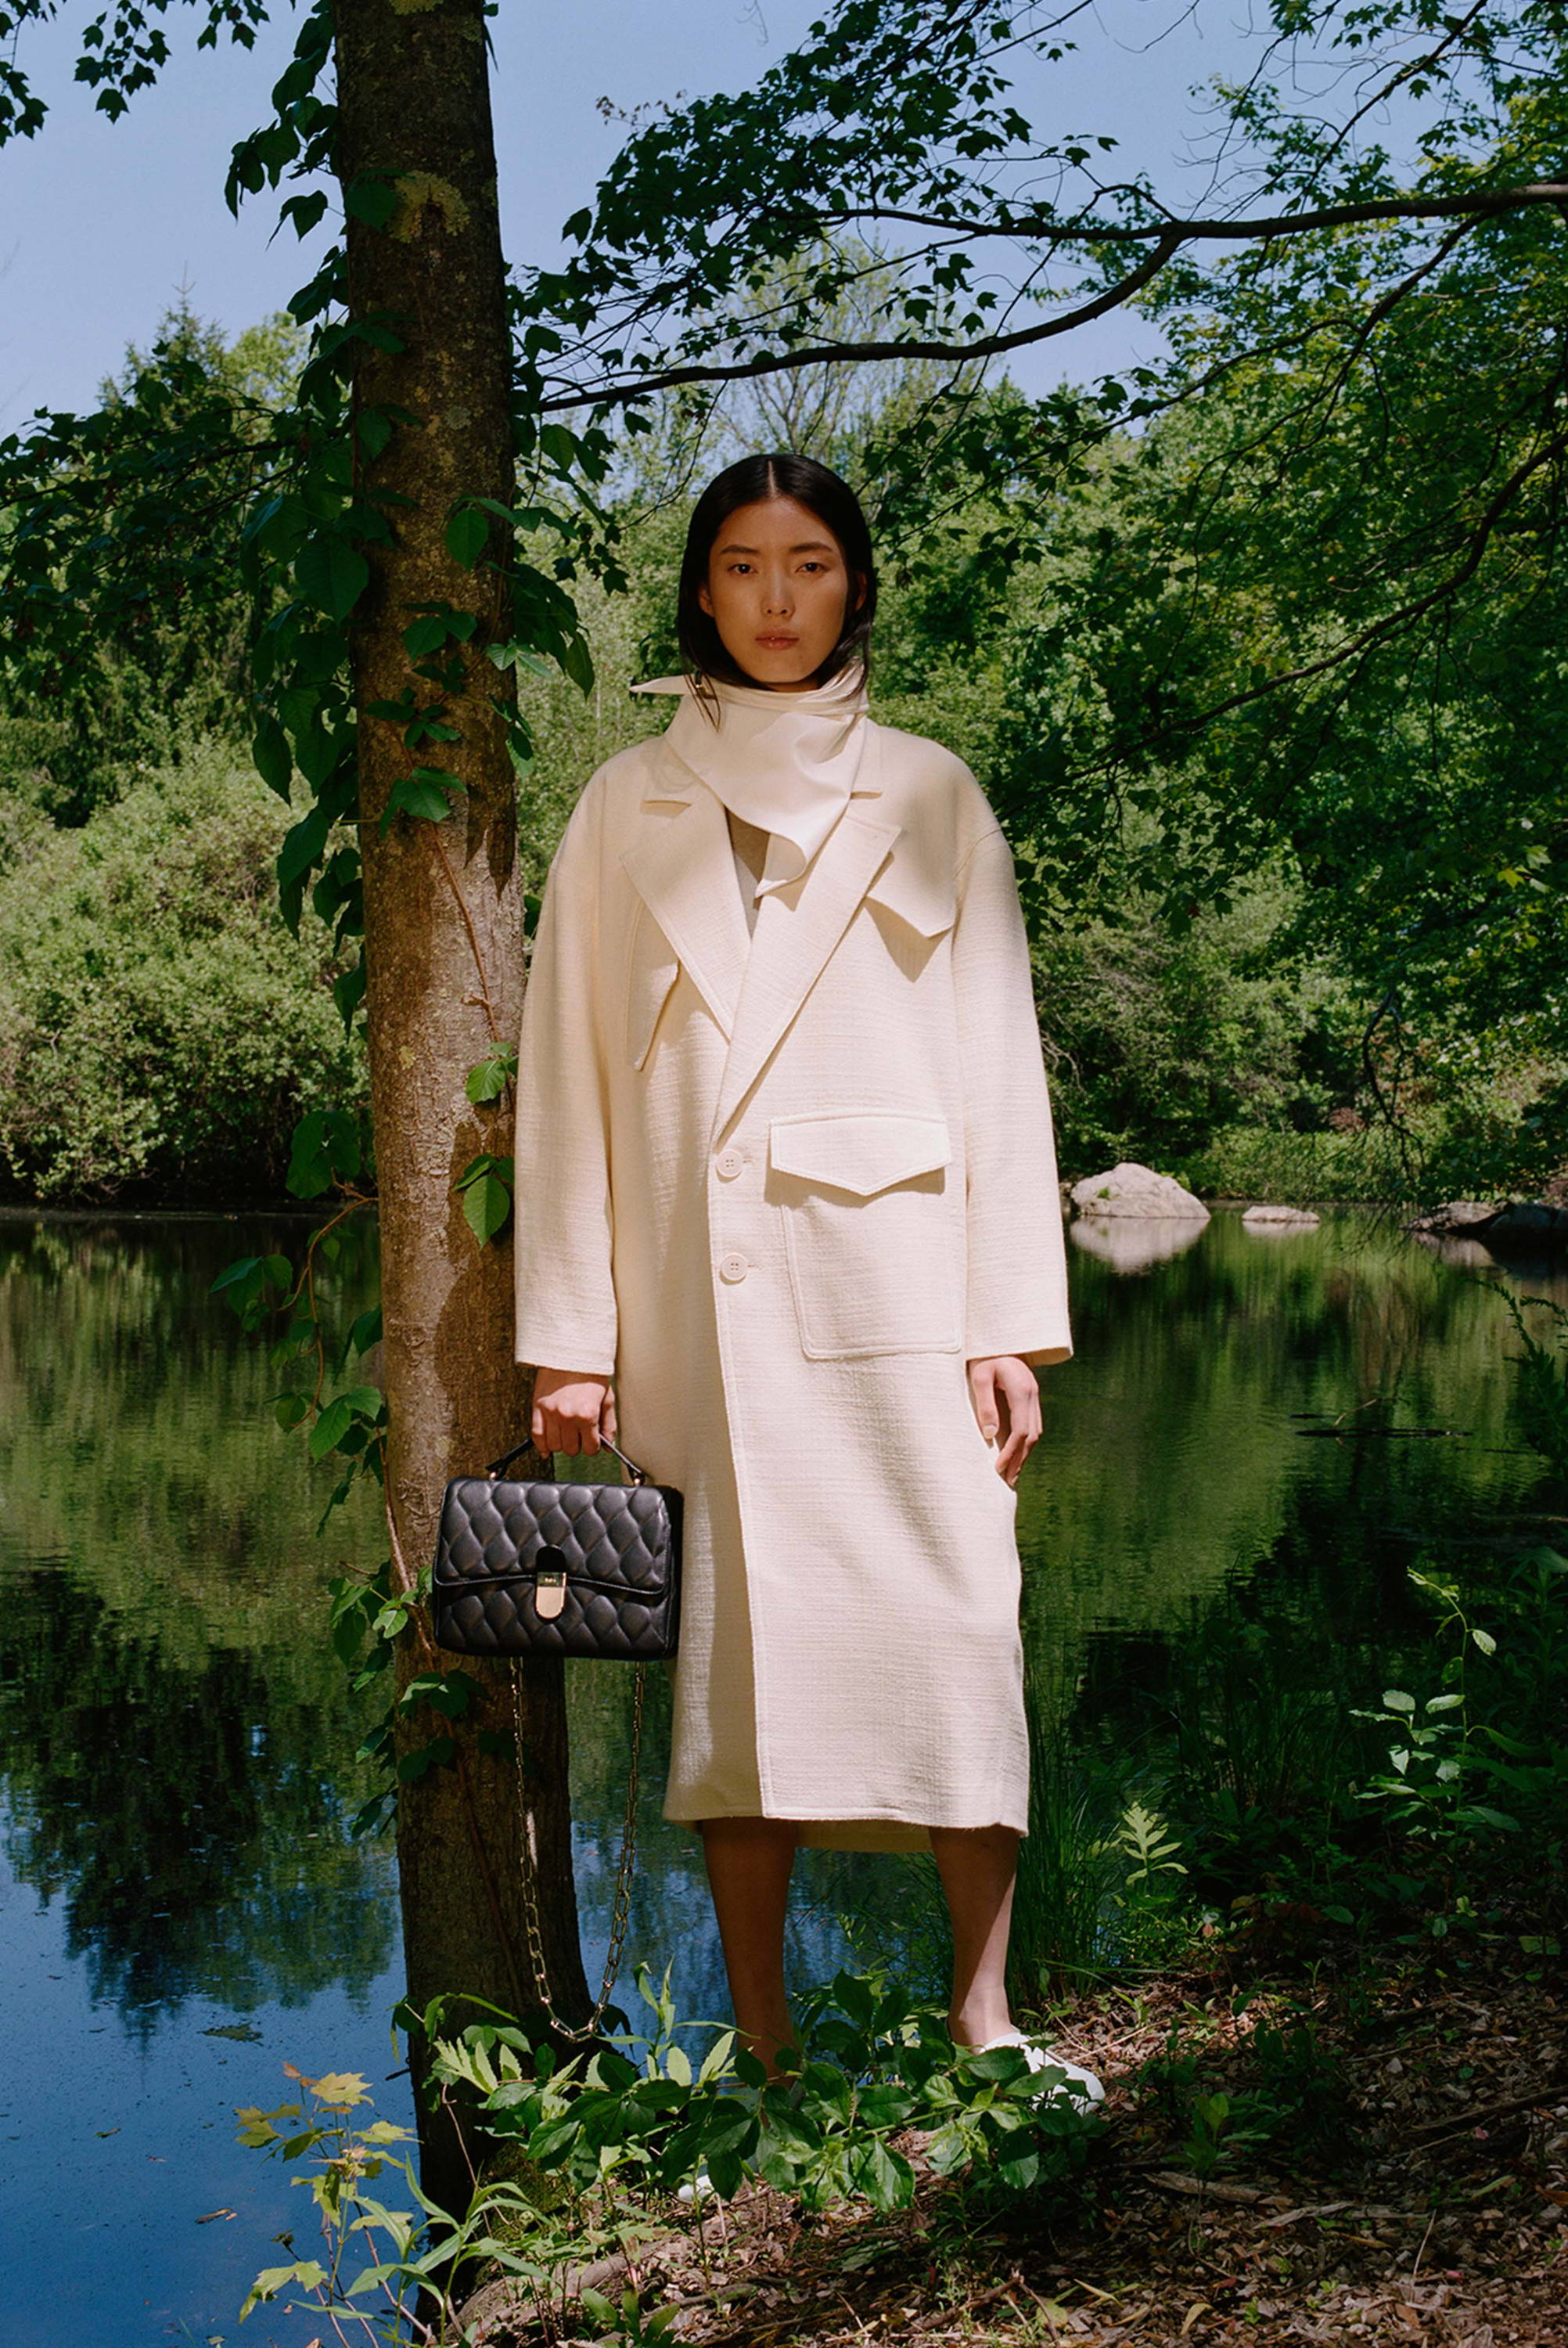 Model standing on front of pond wearing white coat and white leather bandana. She is holding a black quilted bag.